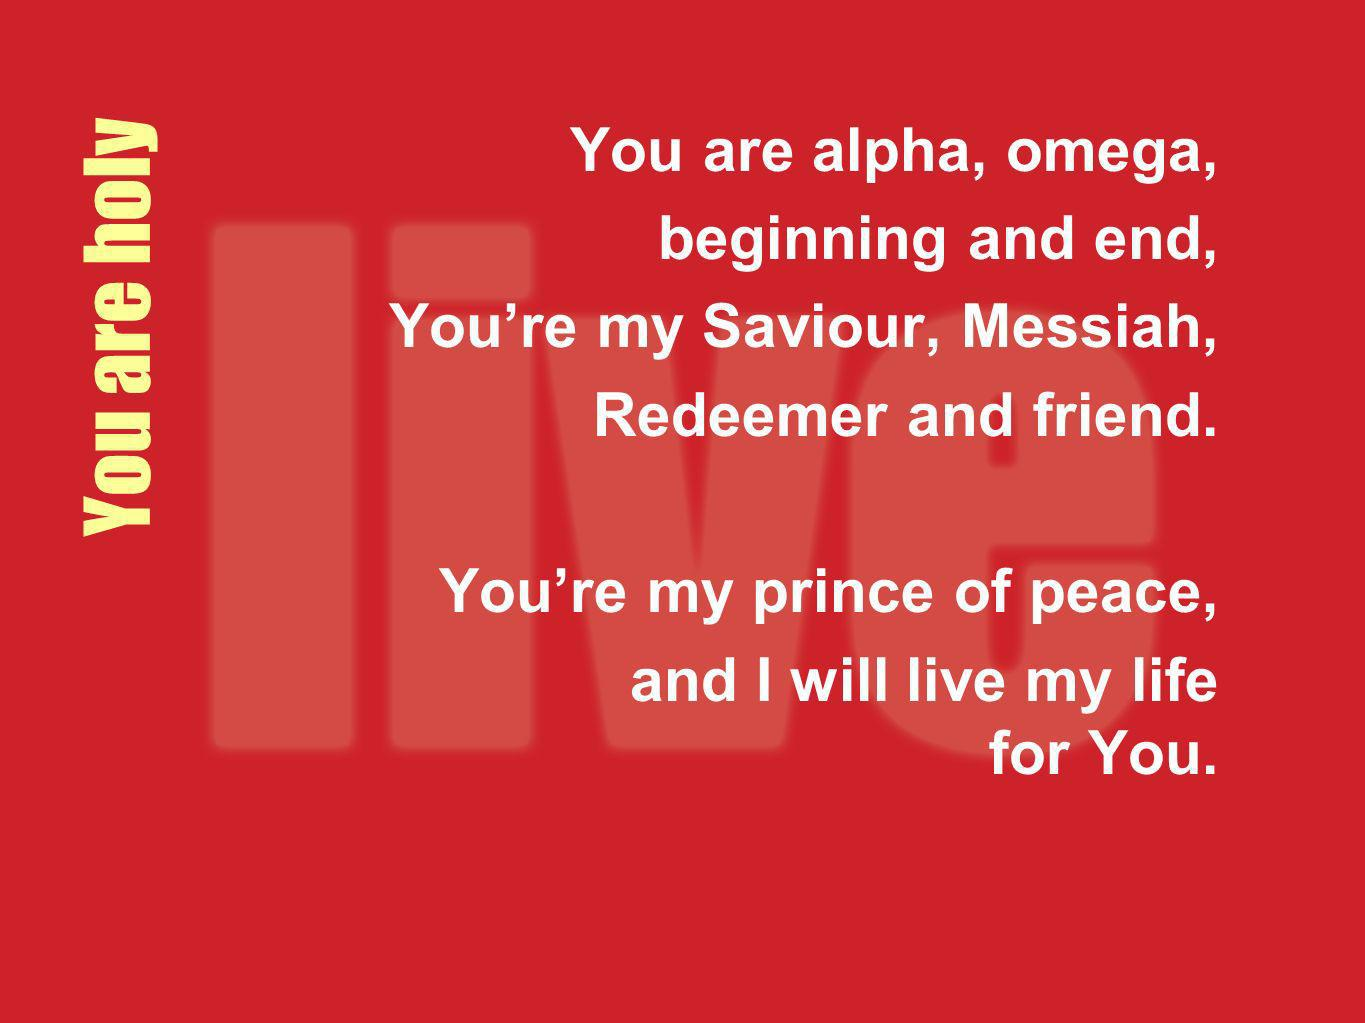 You are holy You are alpha, omega, beginning and end,